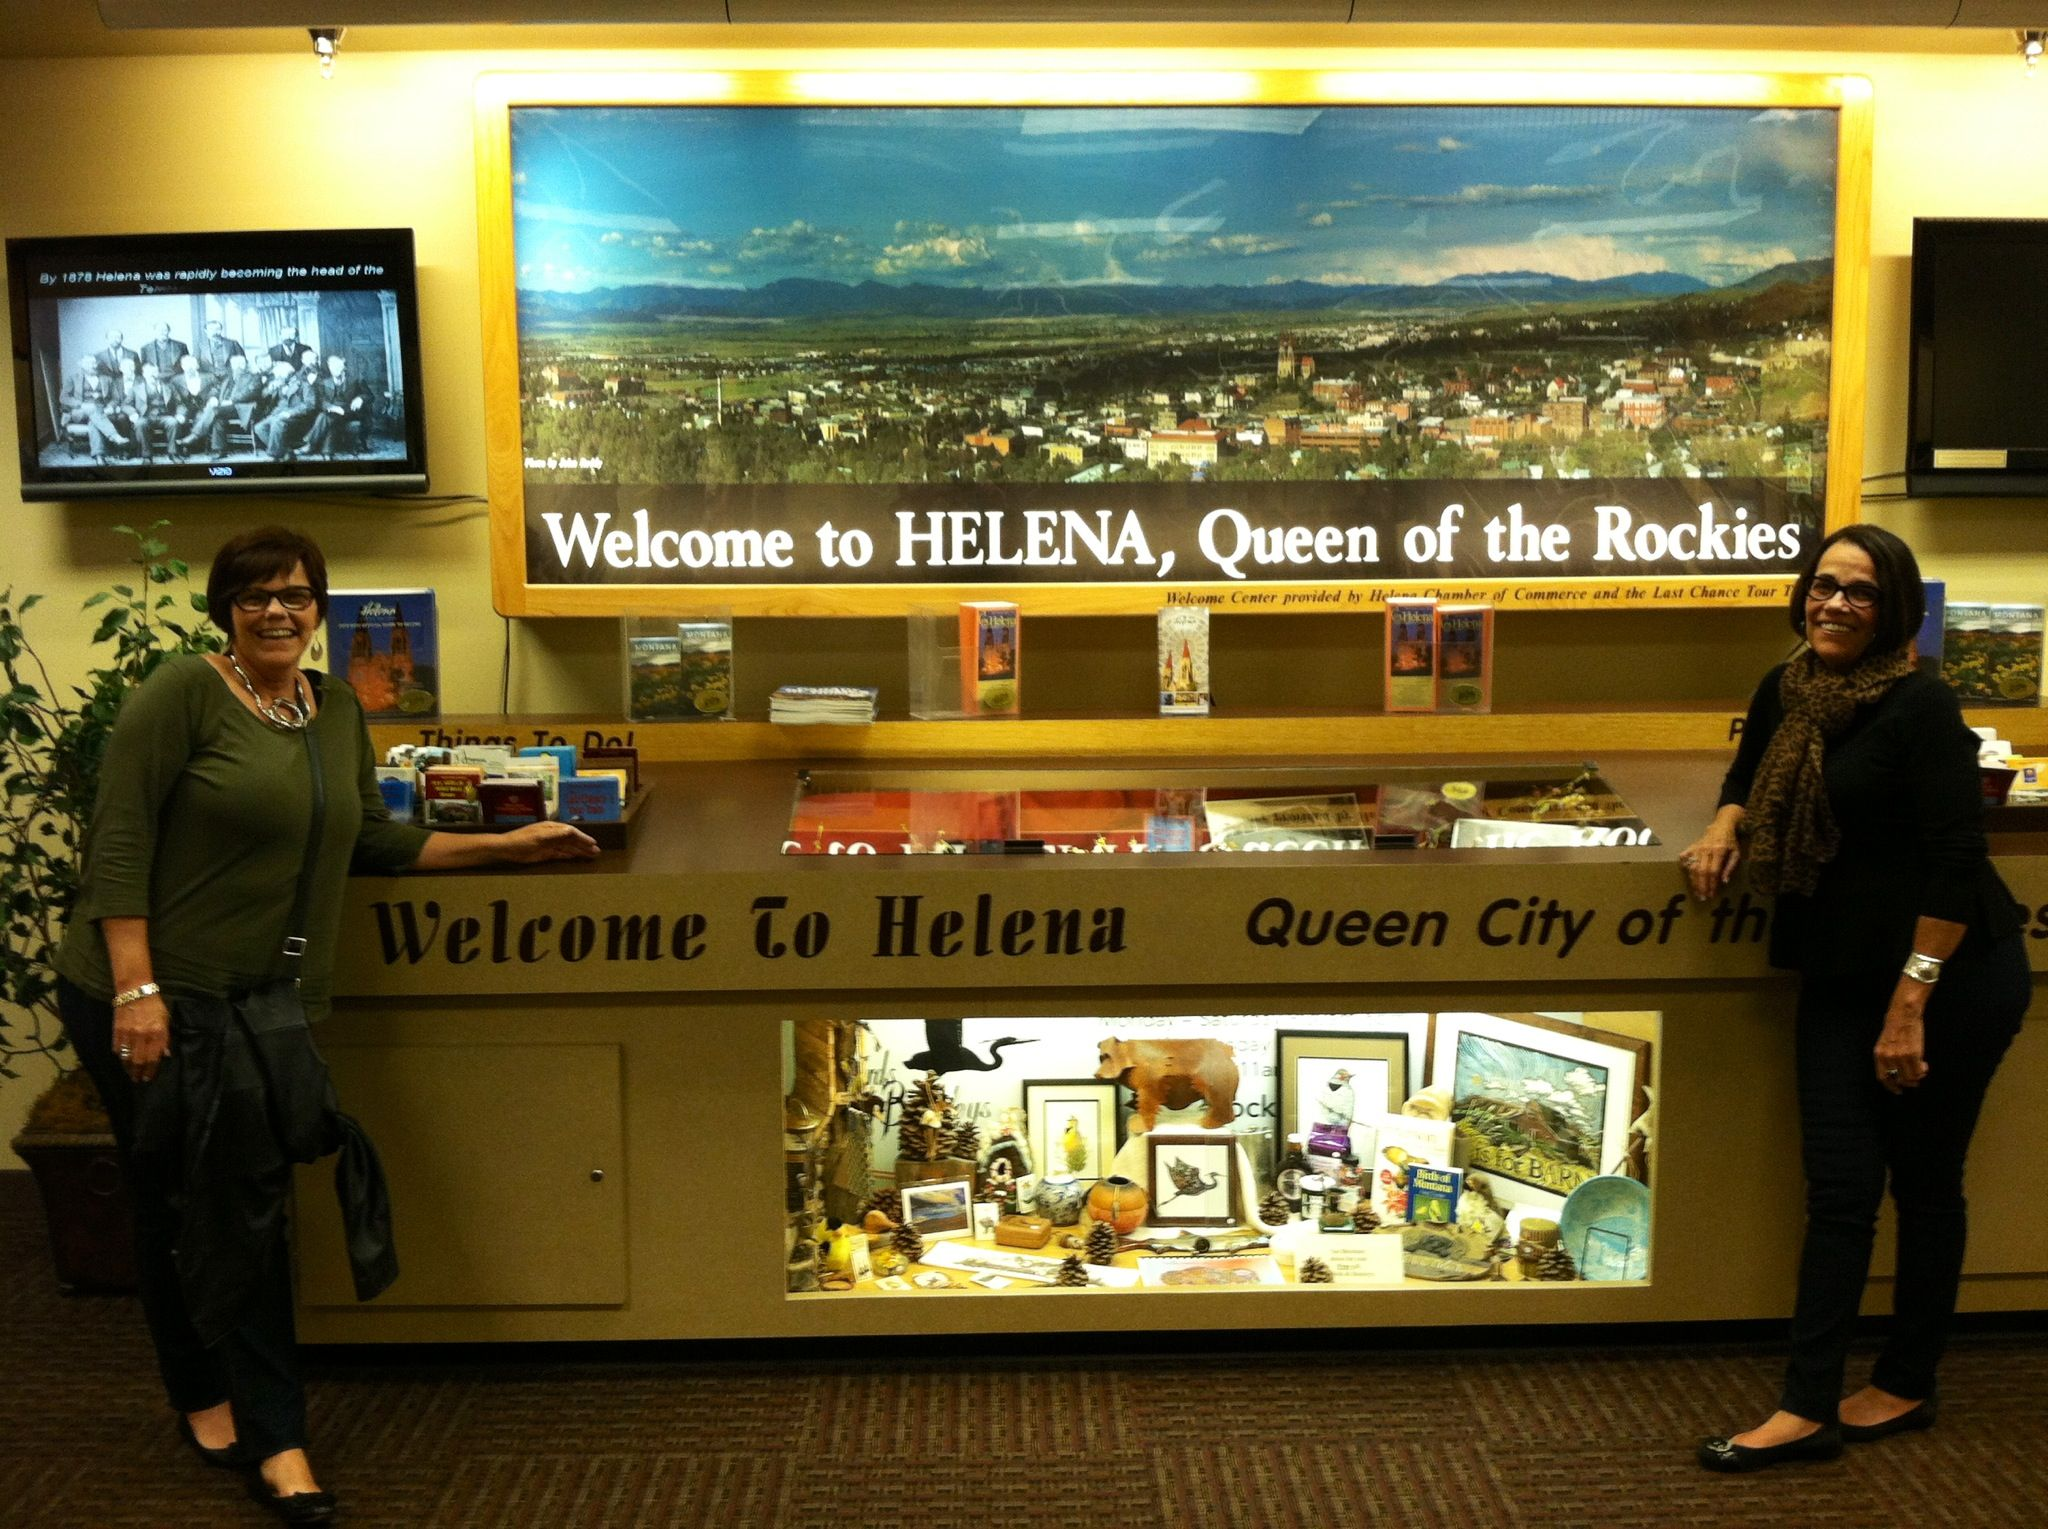 At the airport in Helena